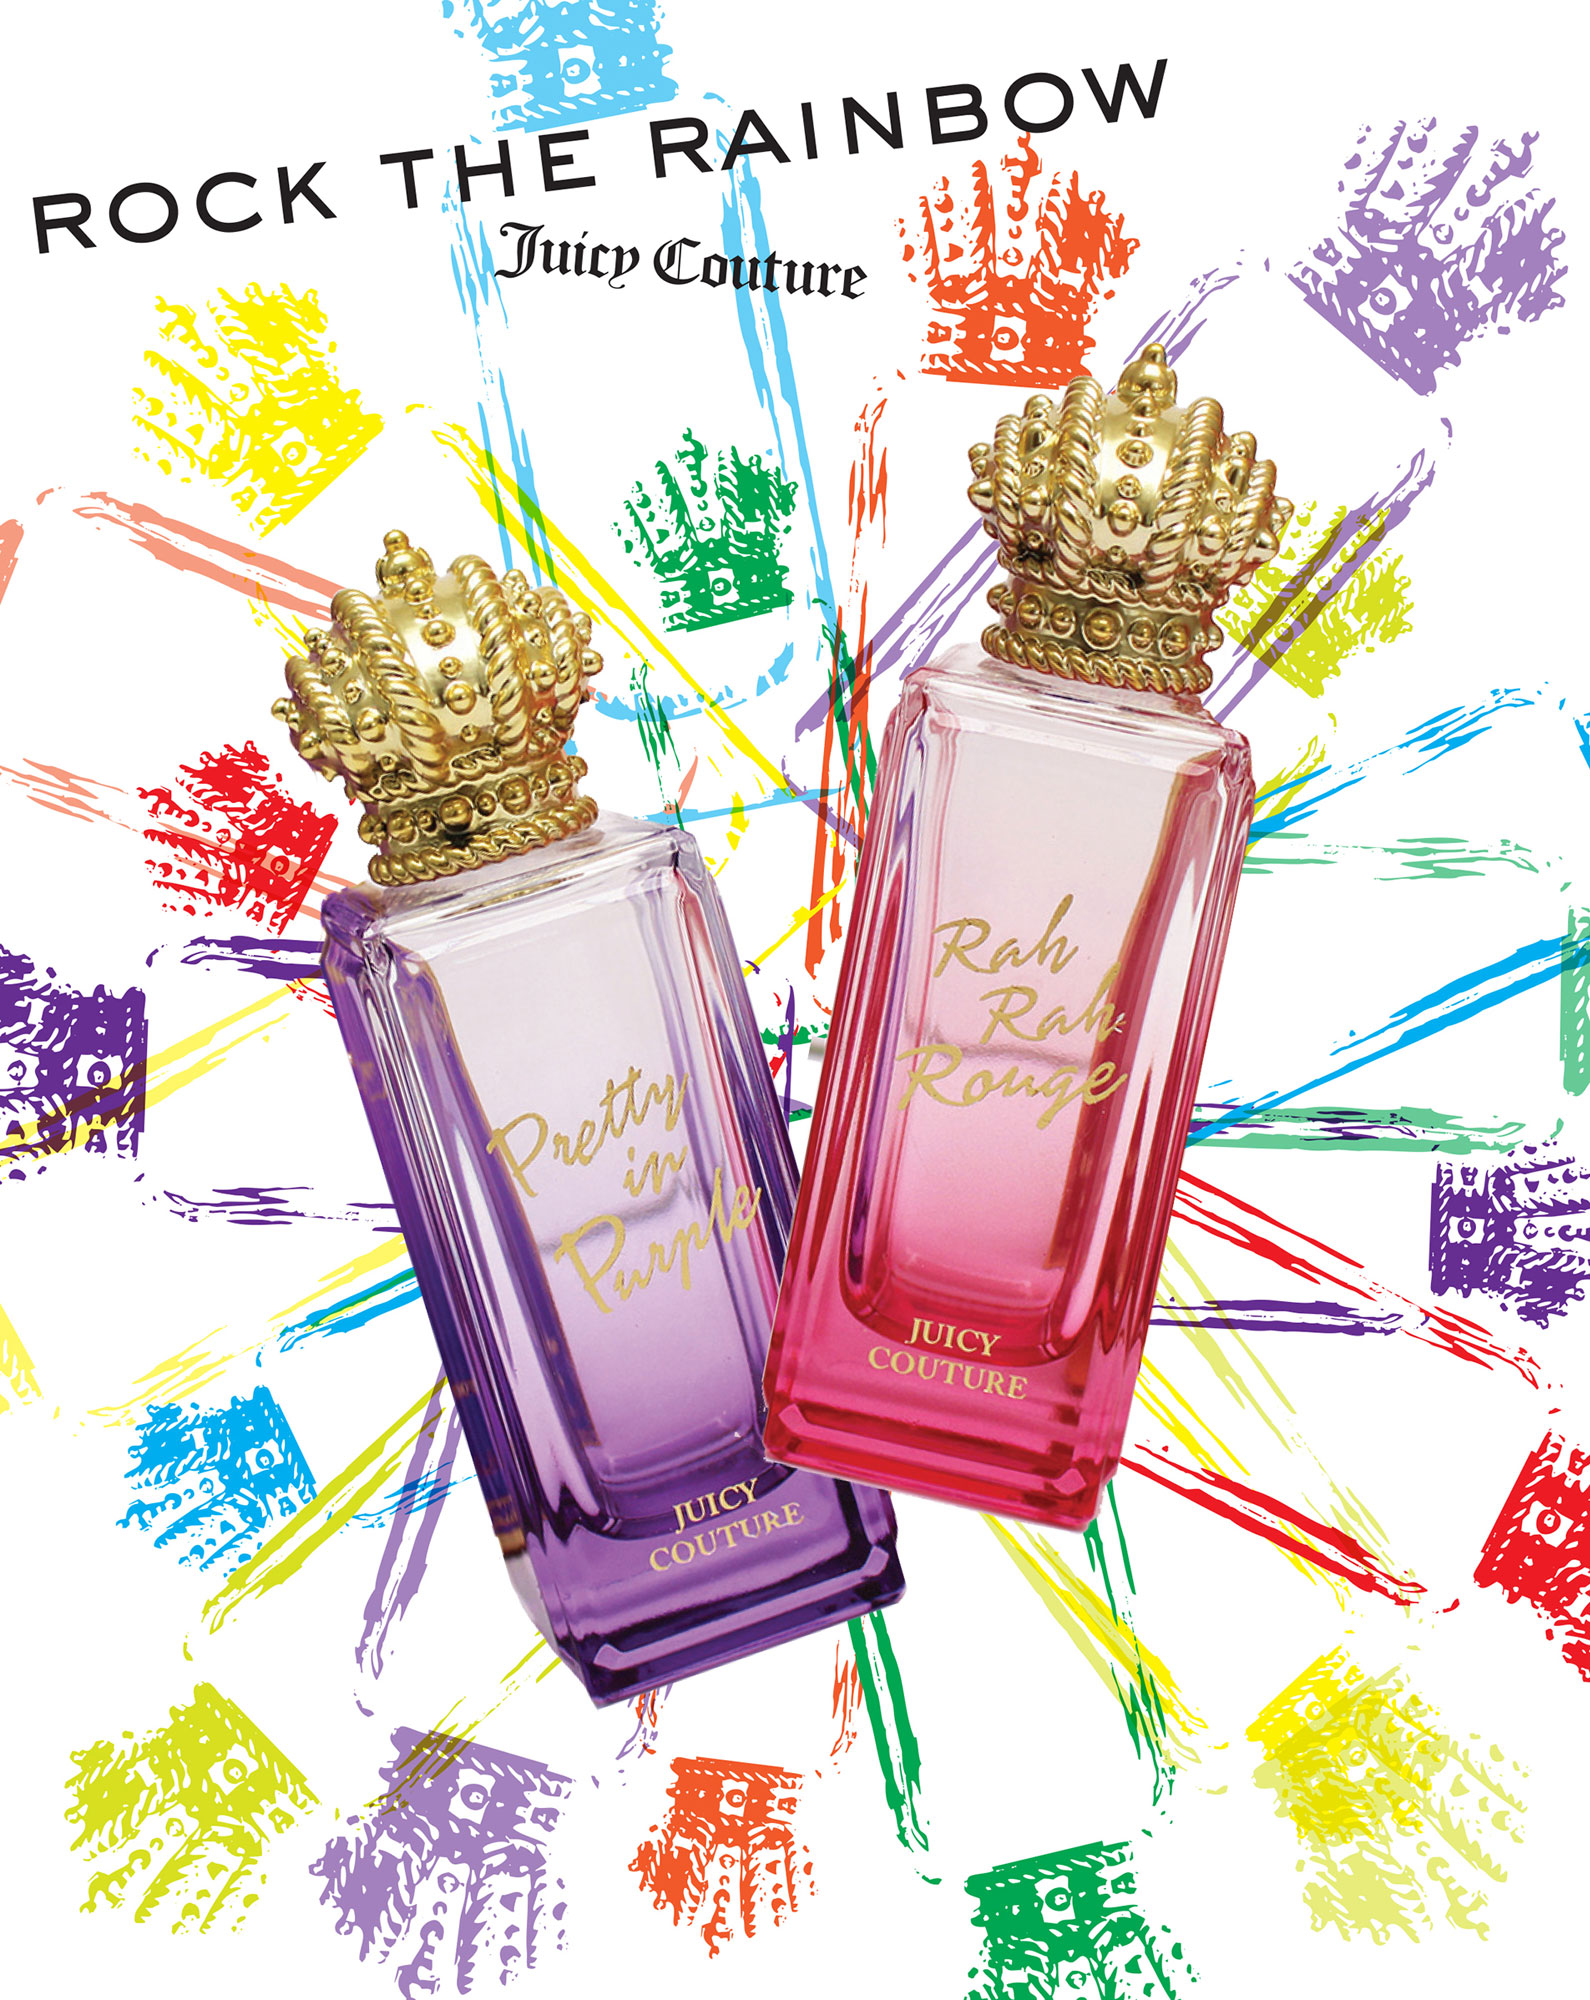 Juicy Couture Rah Rah Rouge